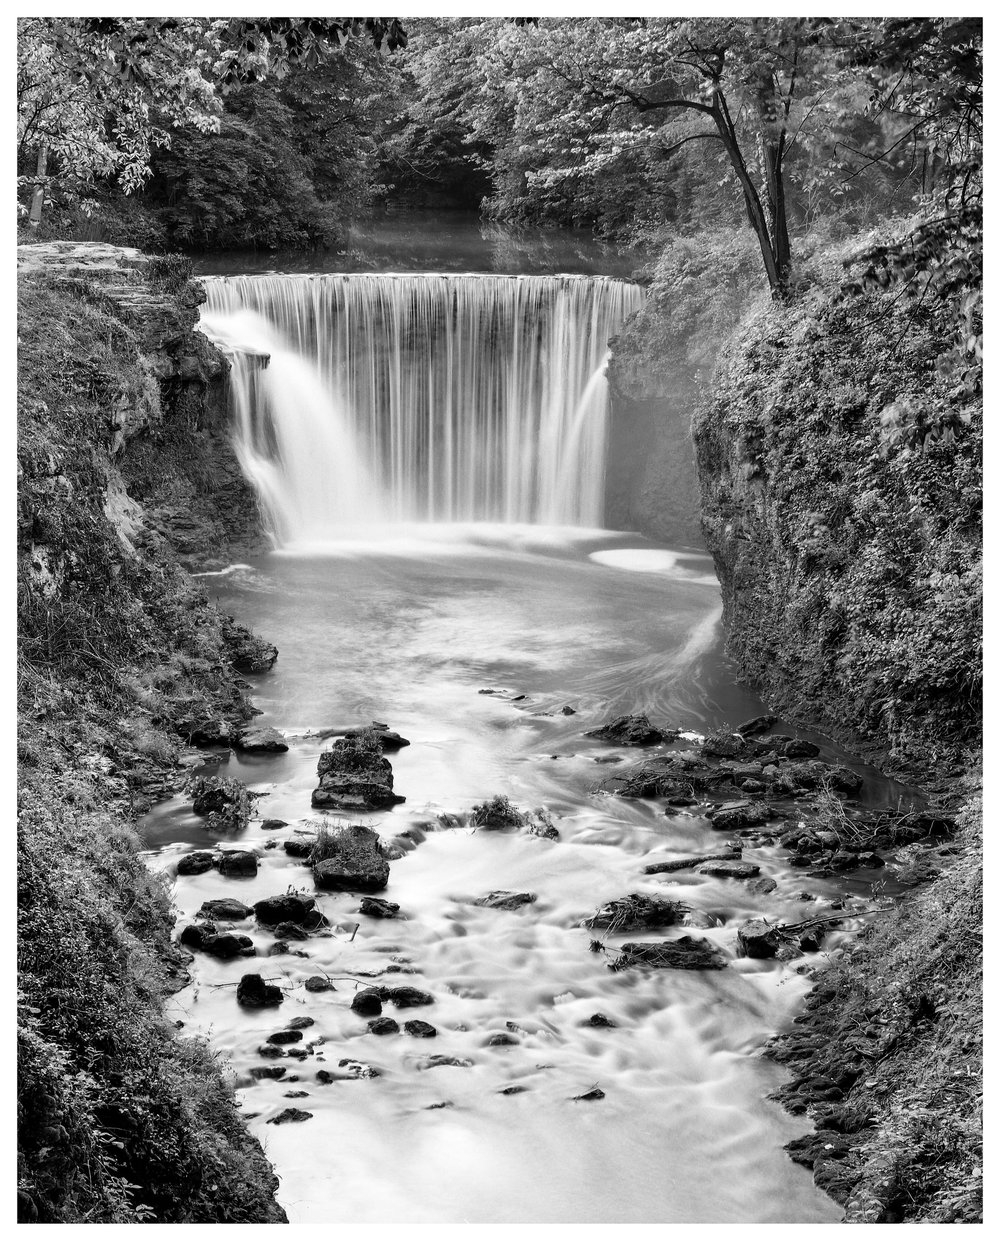 Cedar Cliff Falls - Mamiya RB67 ProS w/90mm lens @ f/16, 30 seconds with a polarizer and 4-stop ND filter on Fuji ACROS 100 film.